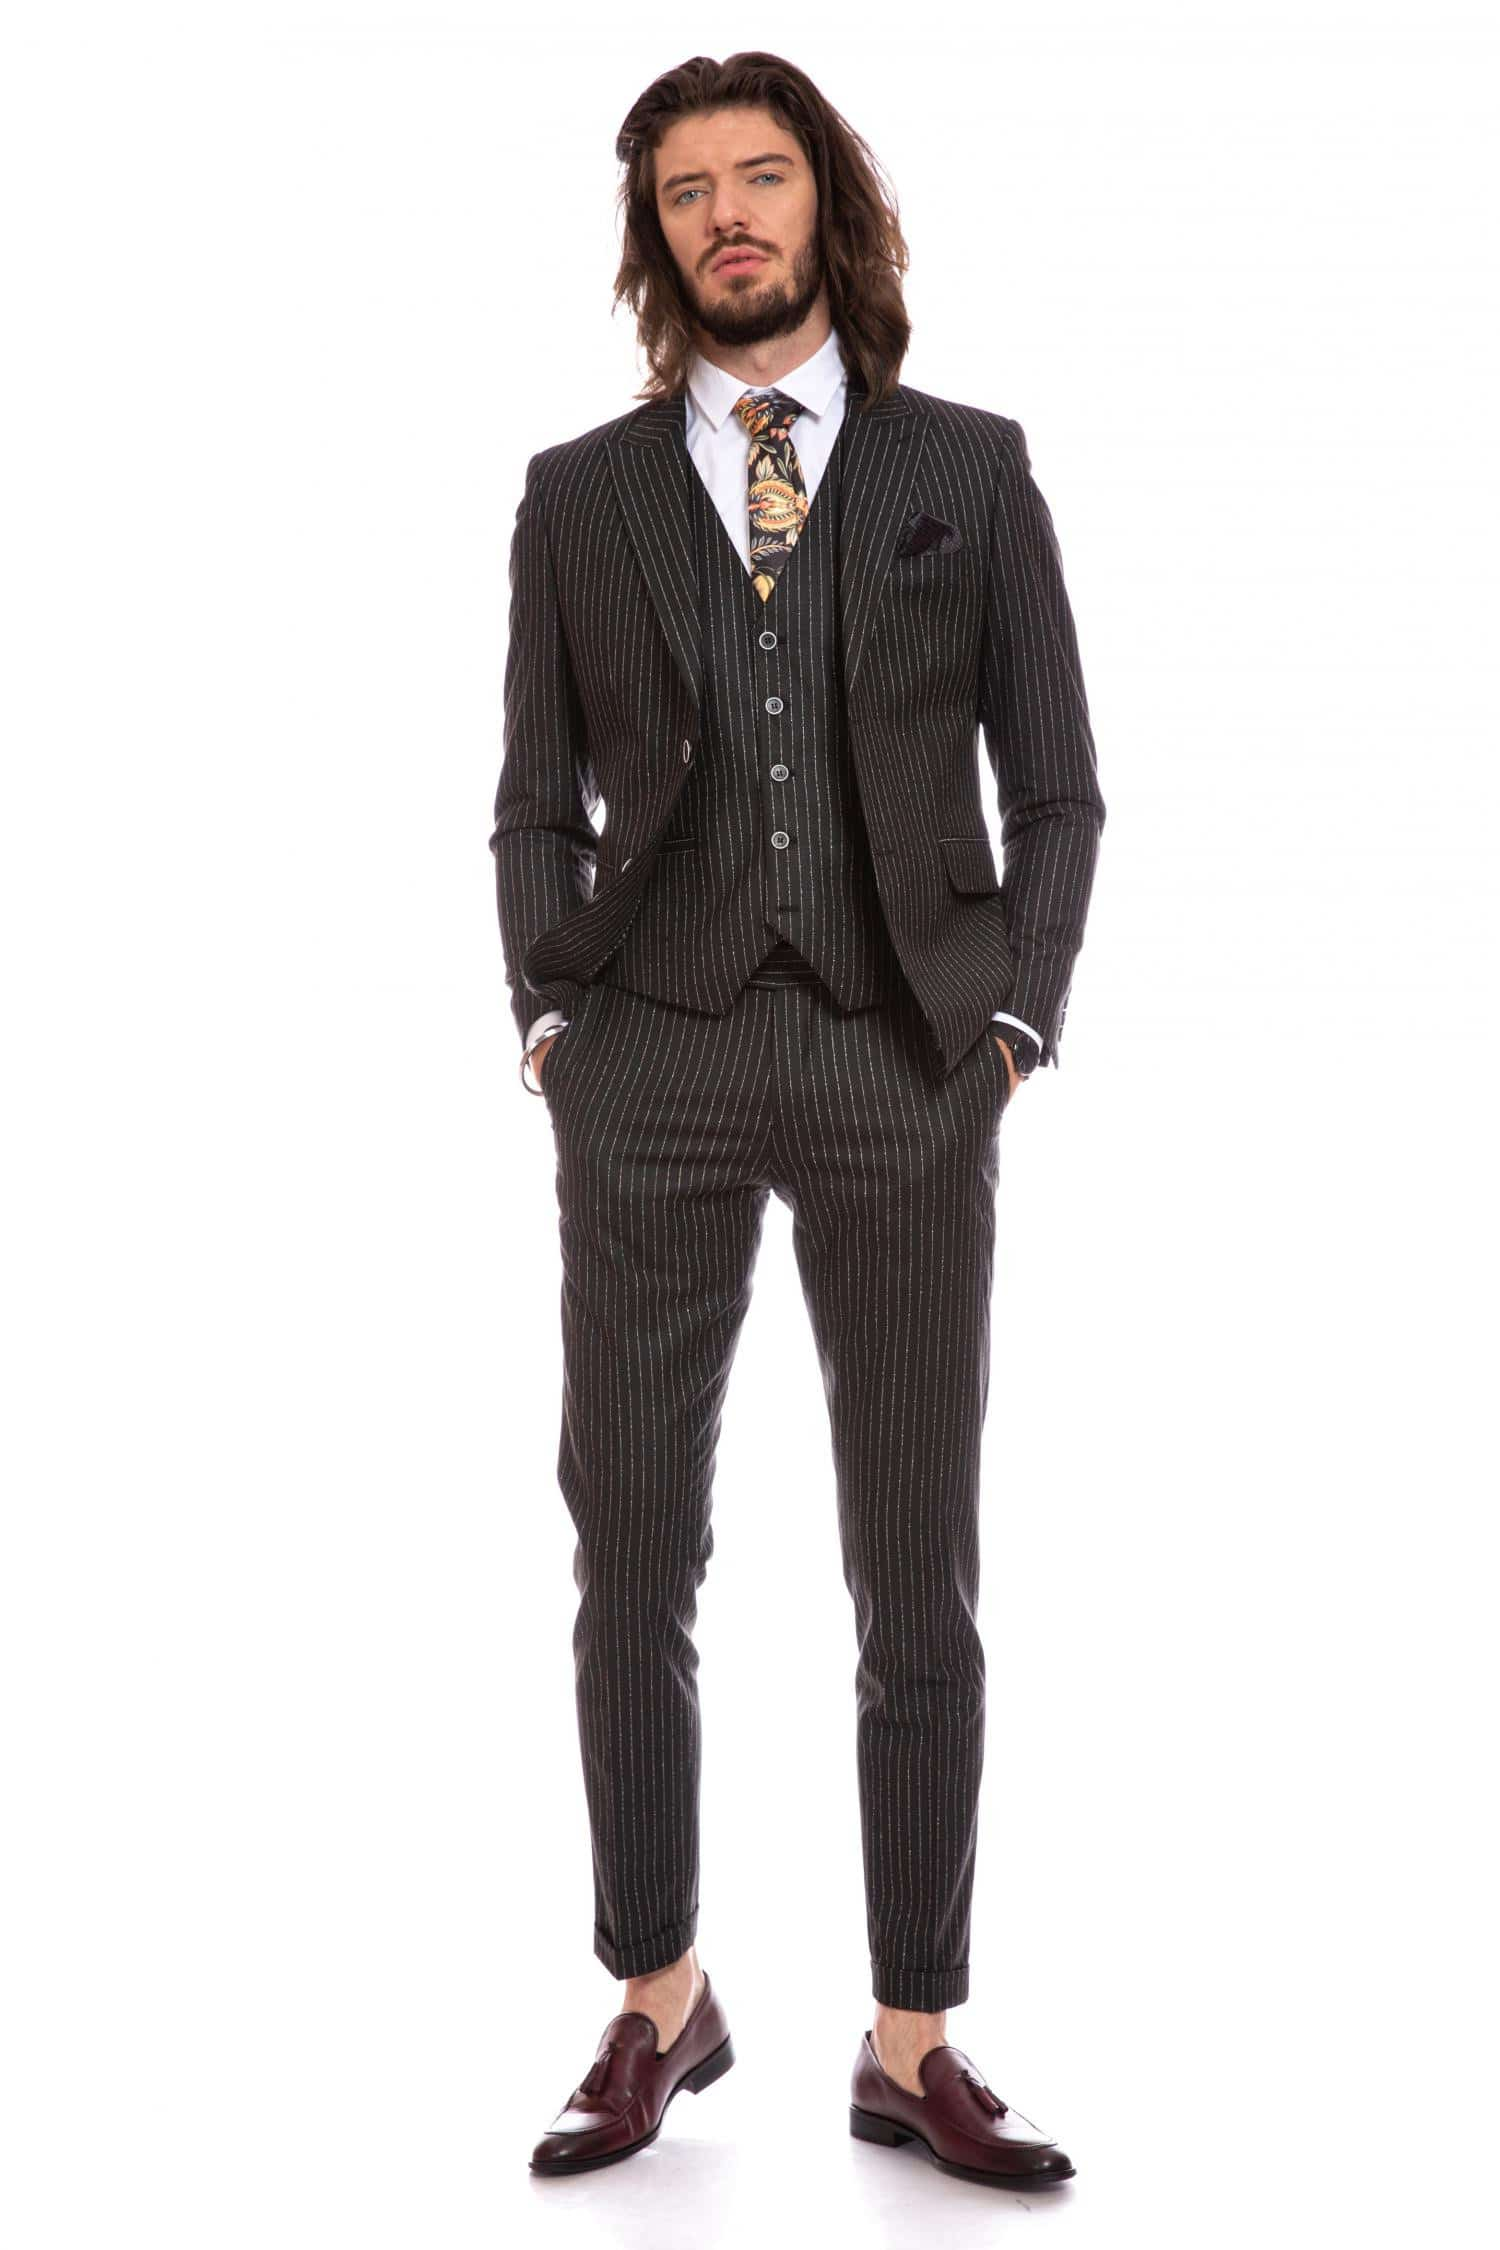 sacou-barbati-slim-fit-don-men-napoli-dungi-negru-costum_1_